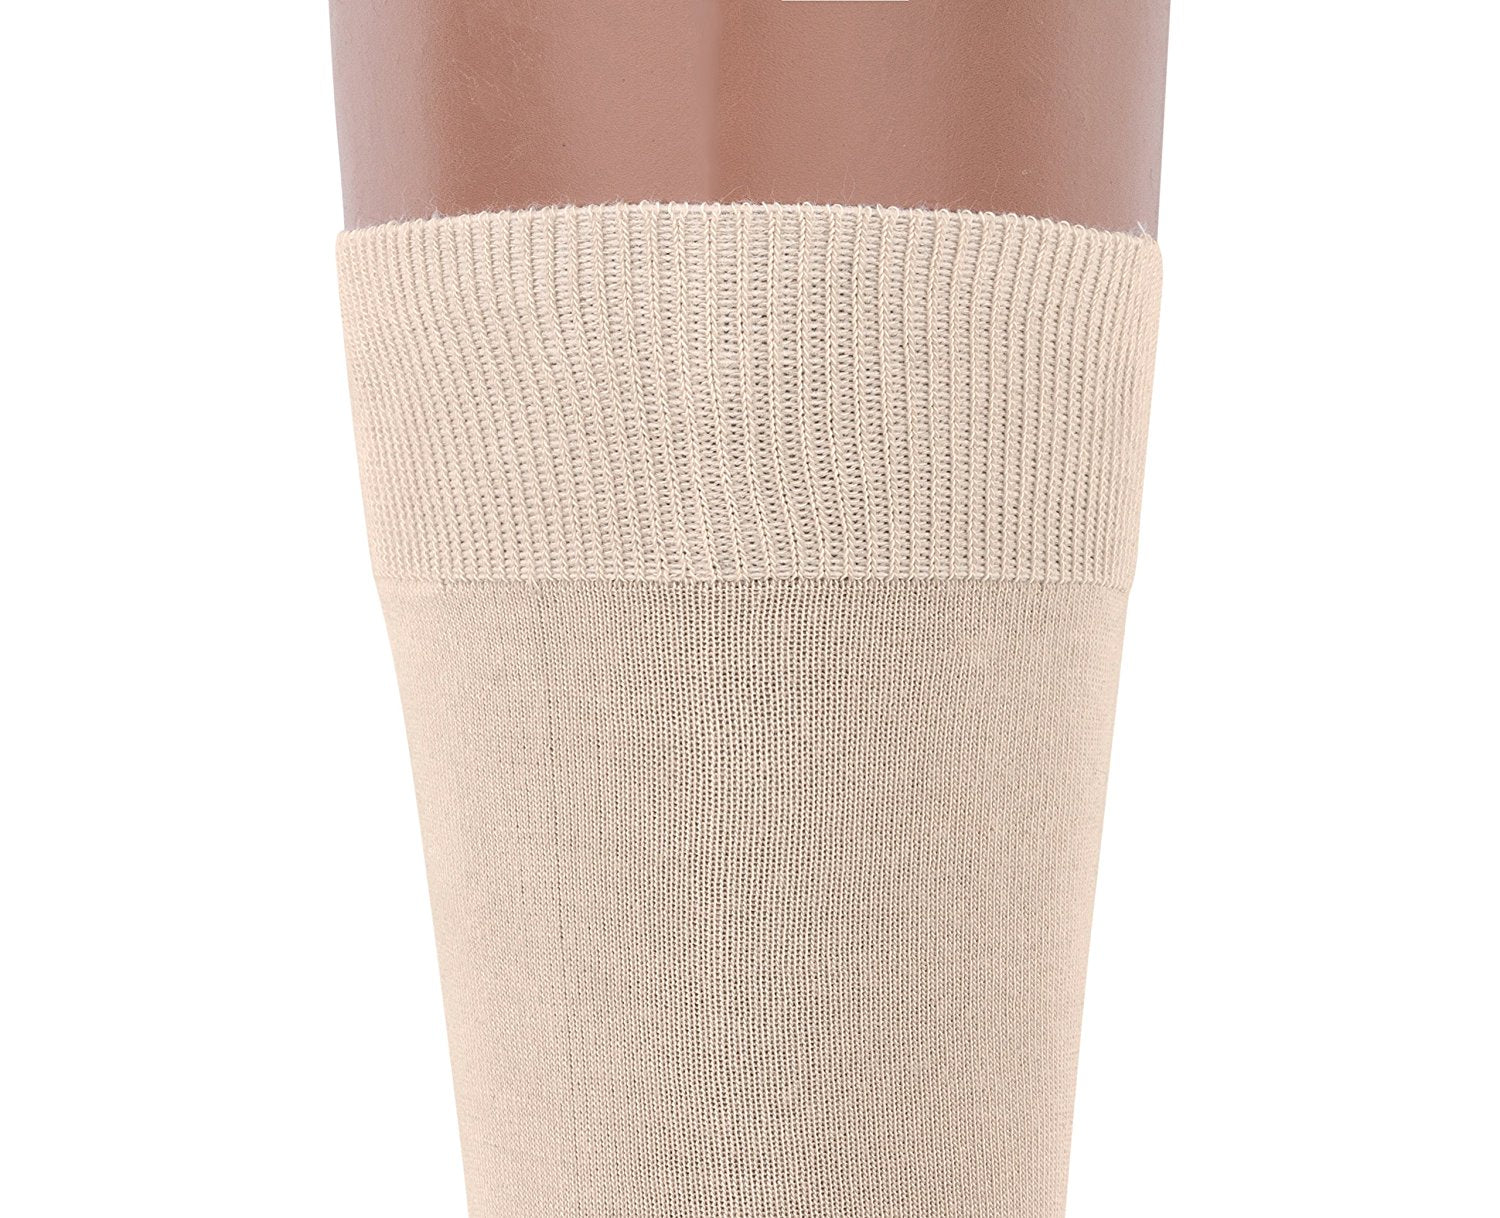 Air Dress Socks Crew – 3 pack Rich European Thin Bamboo Khaki Beige Tan Sock